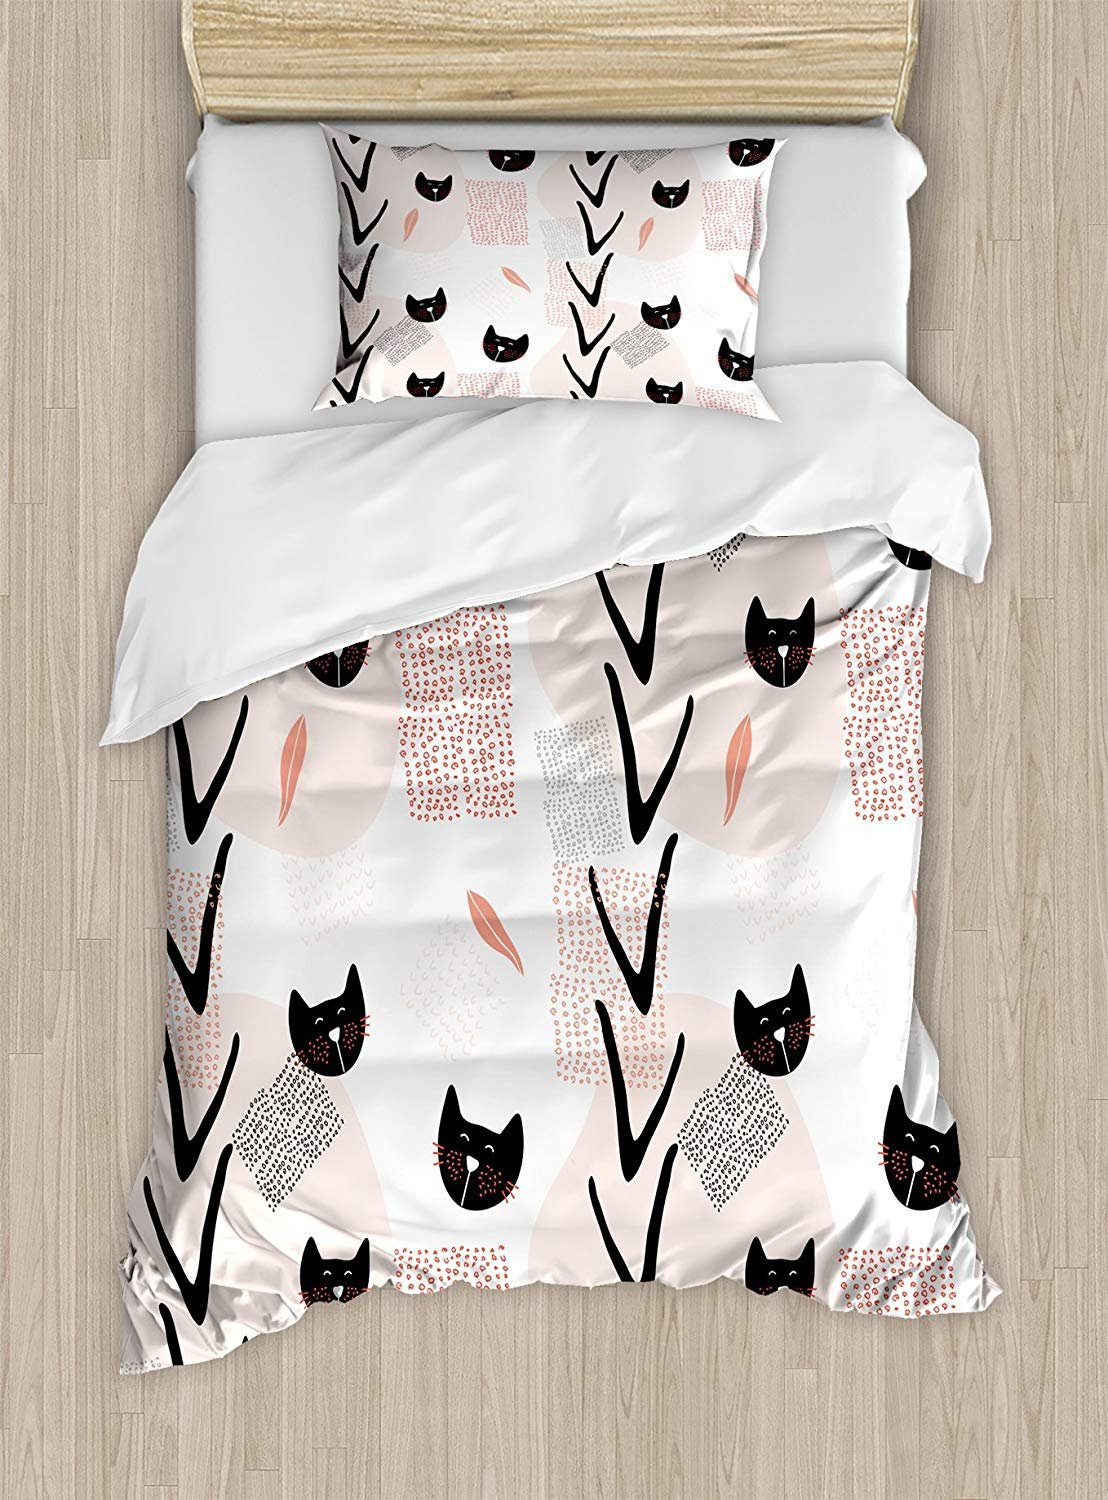 Twin XL Extra Long Bedding Set,Modern Duvet Cover Set,Cute Cat Faces with Dotted Whiskers Kittens Animals Kids Nursery Theme,Cosy House Collection 4 Piece Bedding Setss